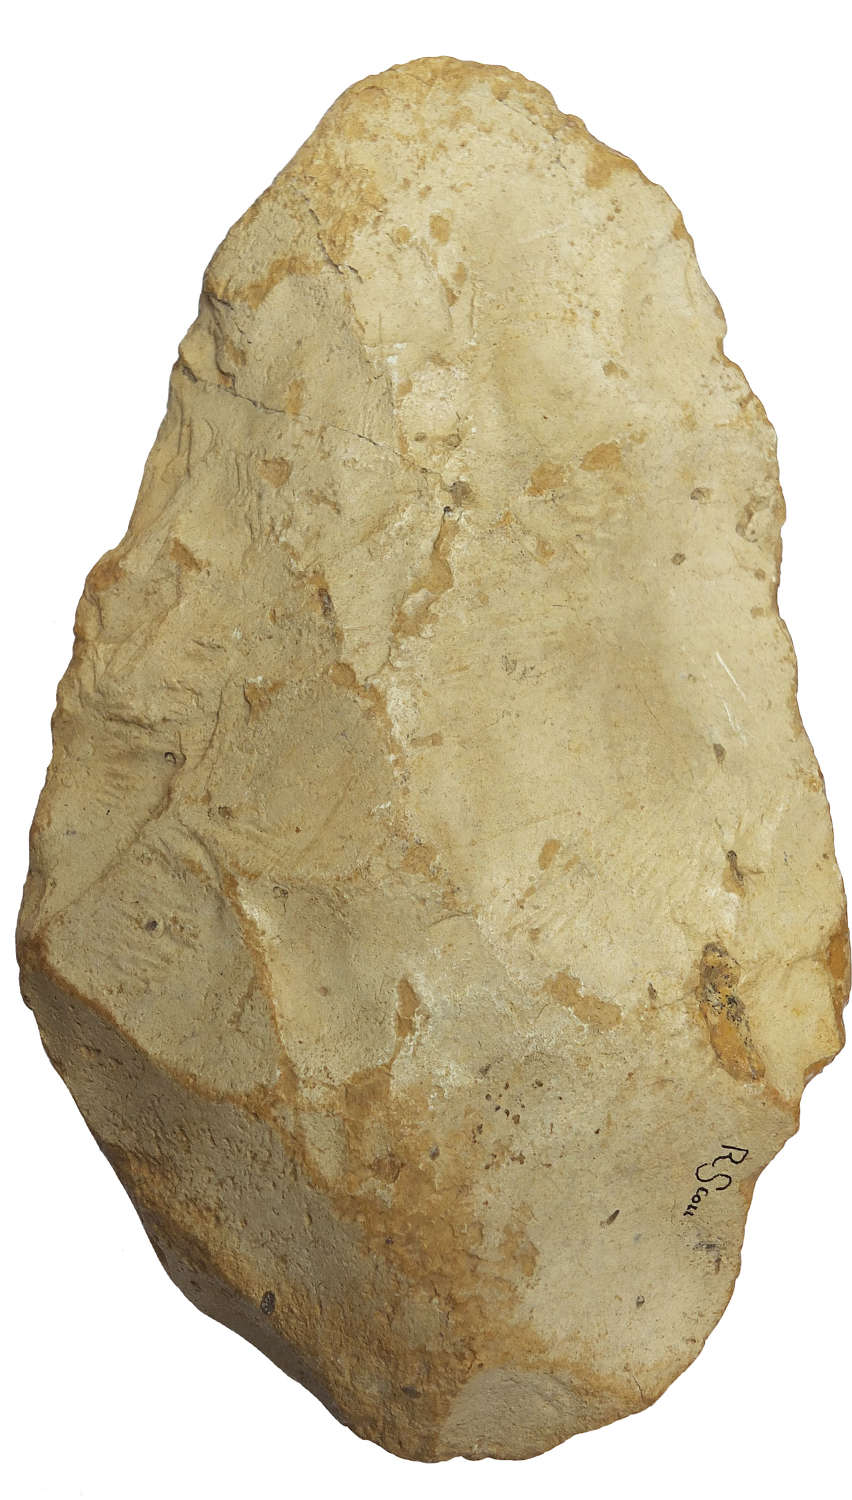 A Lower Palaeolithic chert handaxe from Graves, Charente, France